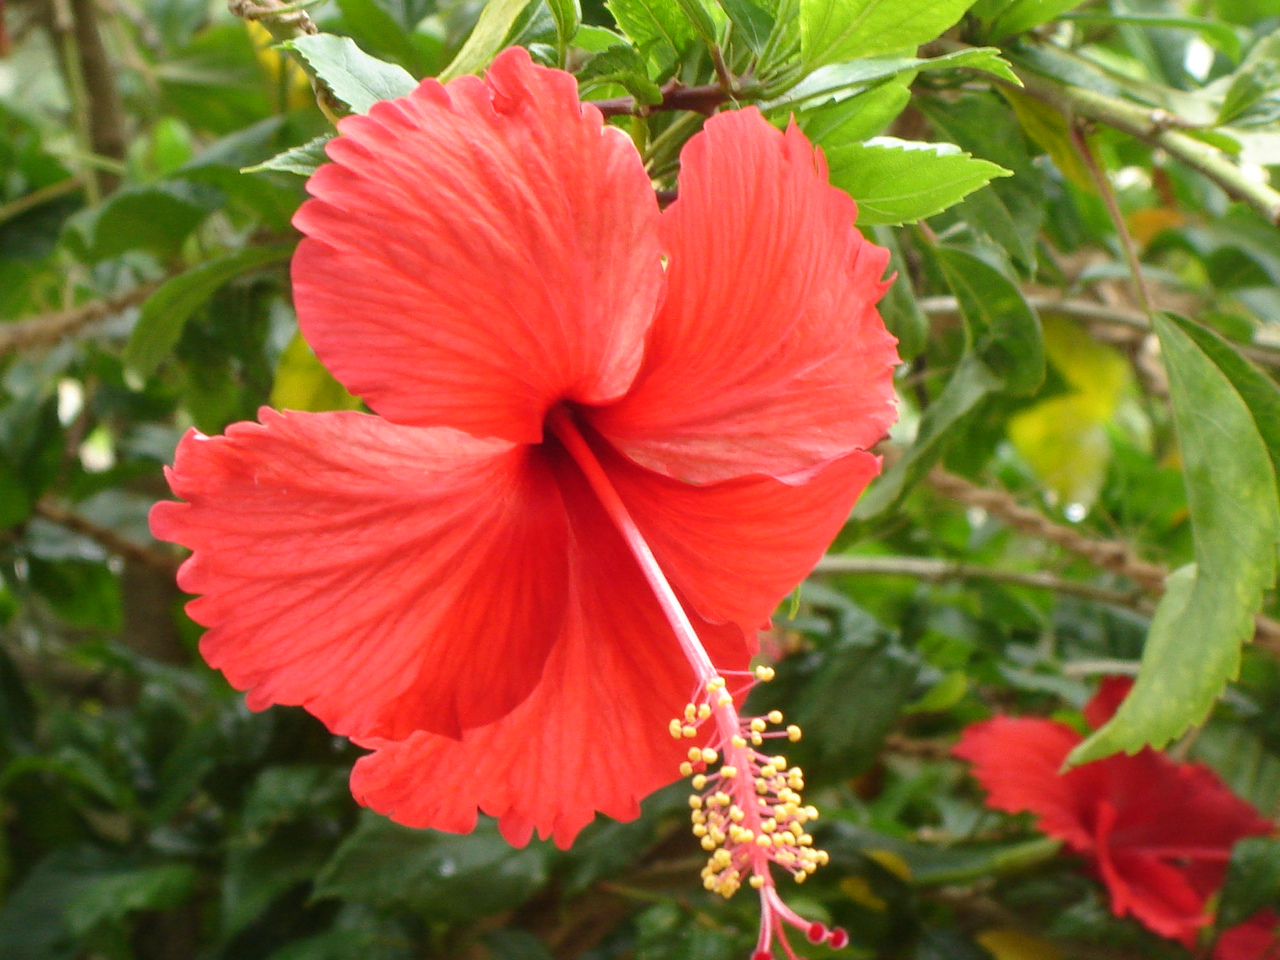 http://upload.wikimedia.org/wikipedia/commons/2/25/Red_Hibiscus_in_Chennai_during_Spring.JPG